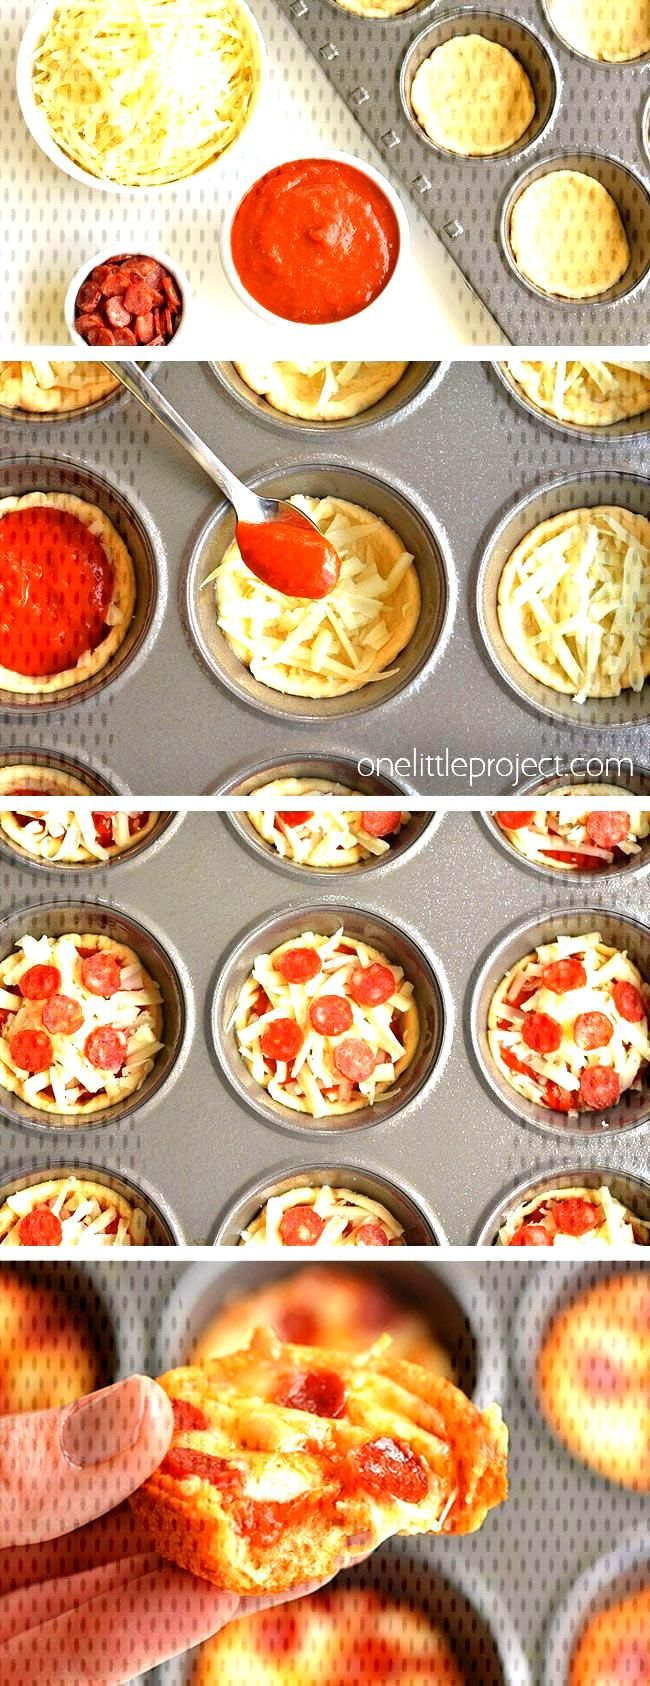 These deep dish mini pizzas are DELICIOUS and they're really easy to make! This is such an awesome